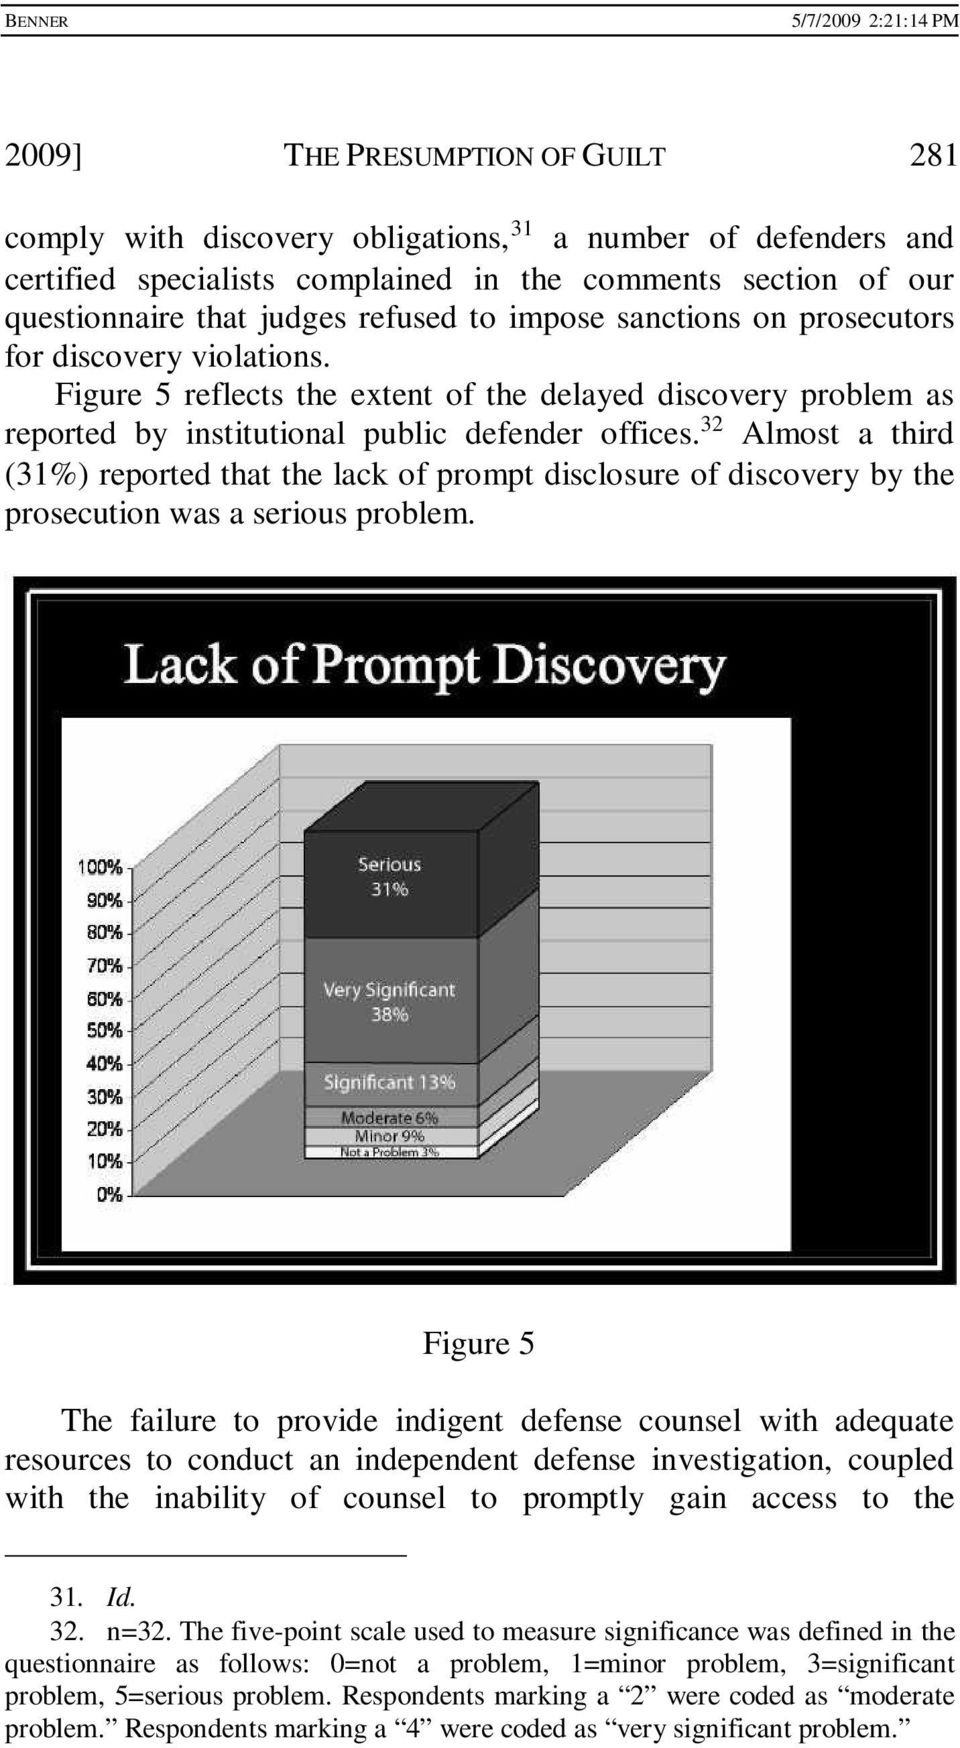 Figure 5 reflects the extent of the delayed discovery problem as reported by institutional public defender offices.